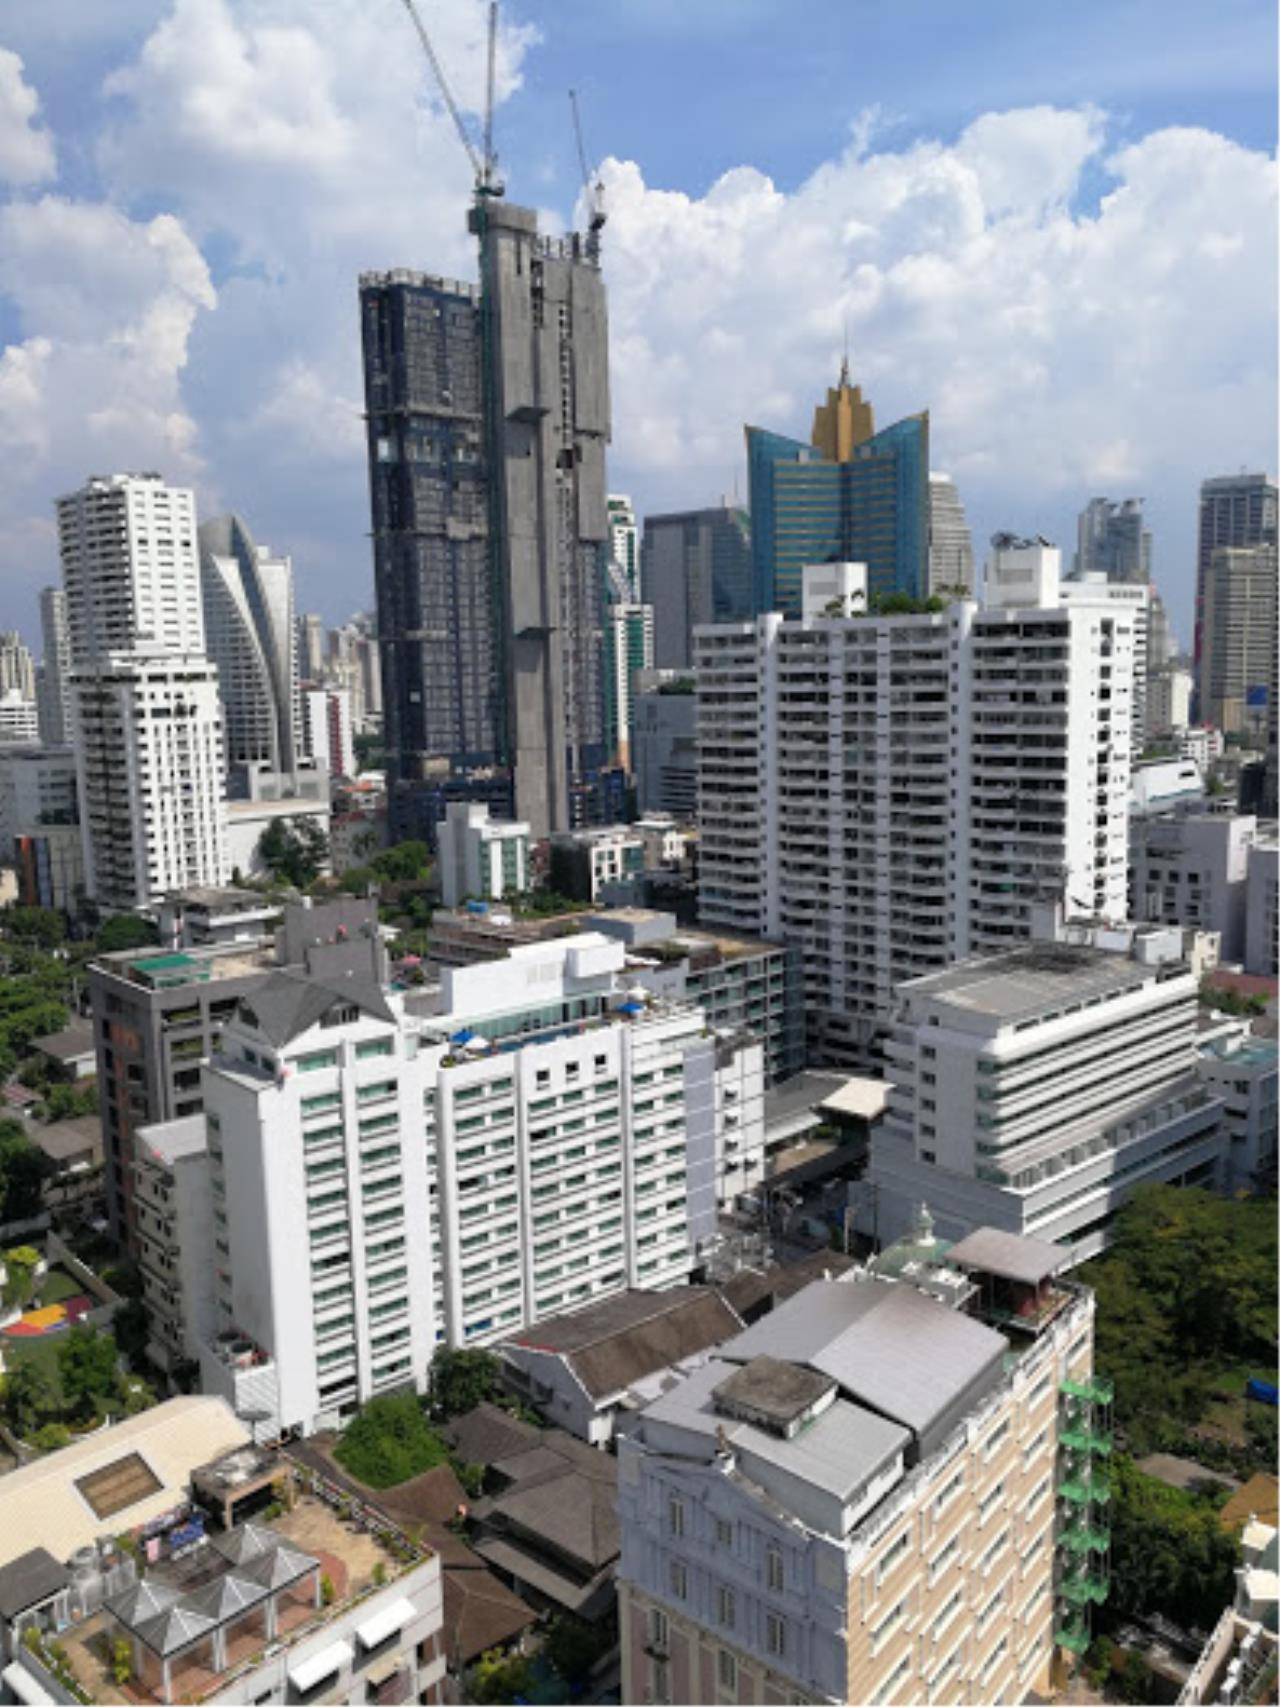 Quality Life Property Agency's S A L E  ! 15 Sukhumvit residence | 1 Bed 1 Bath | 59.29 Sq. M. 15